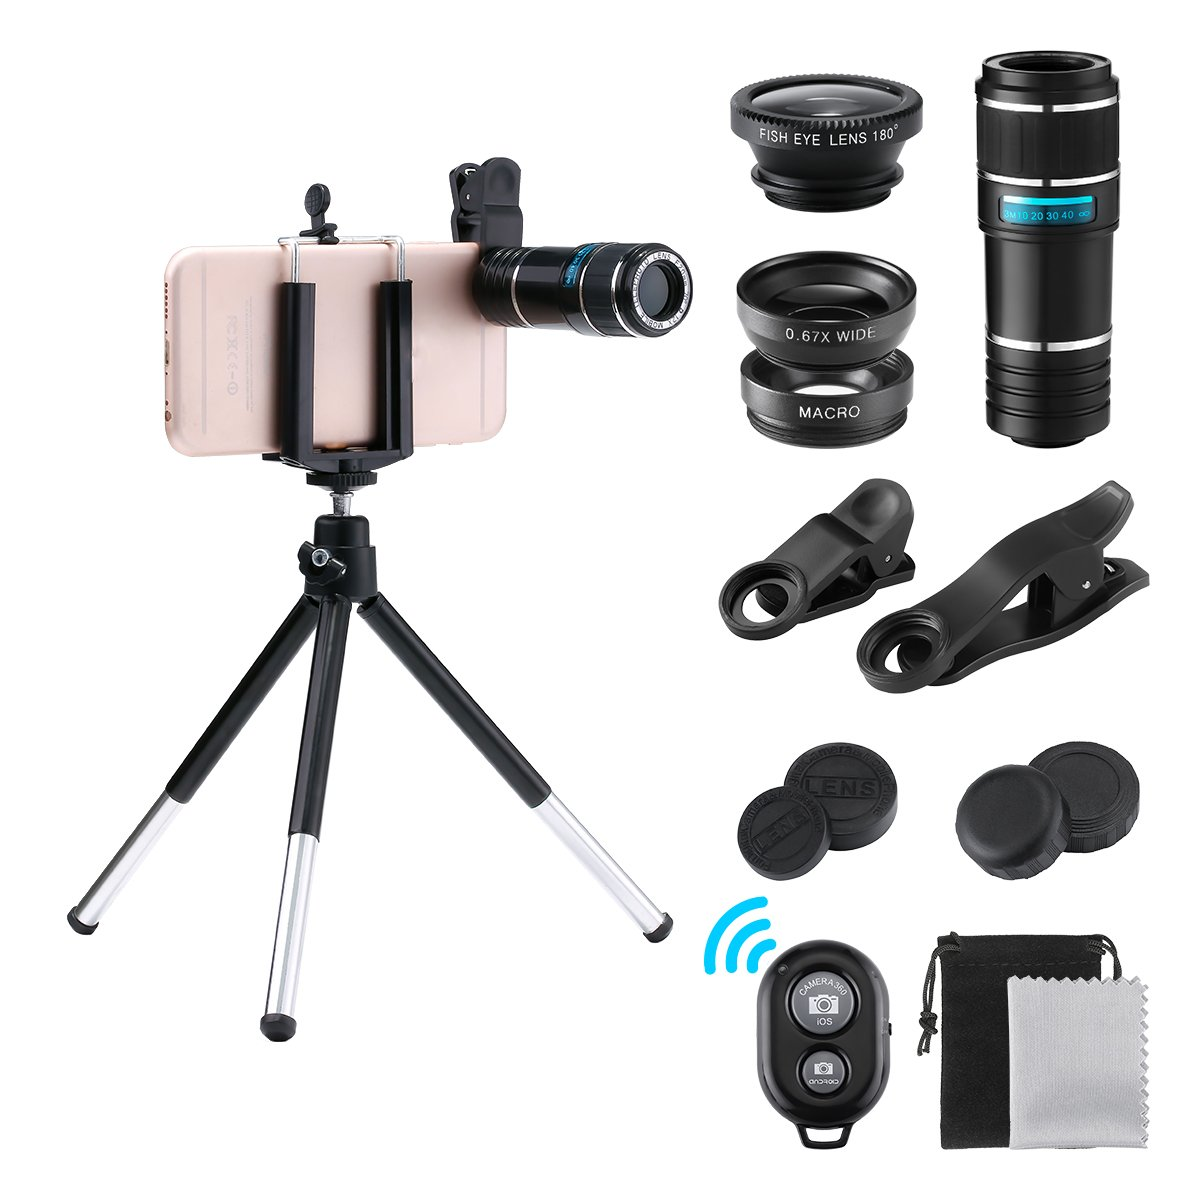 Cell Phone Camera Lens Kit, GLISTENY 4 in 1 HD 12X Zoom Telephoto Lens+ Fisheye+ Wide Angle+ Macro Lens+ Retractable Tripod+ Remote Shutter for IPhoneX, 8, 7, 6s, 6s Plus& Samsung &Smartphone